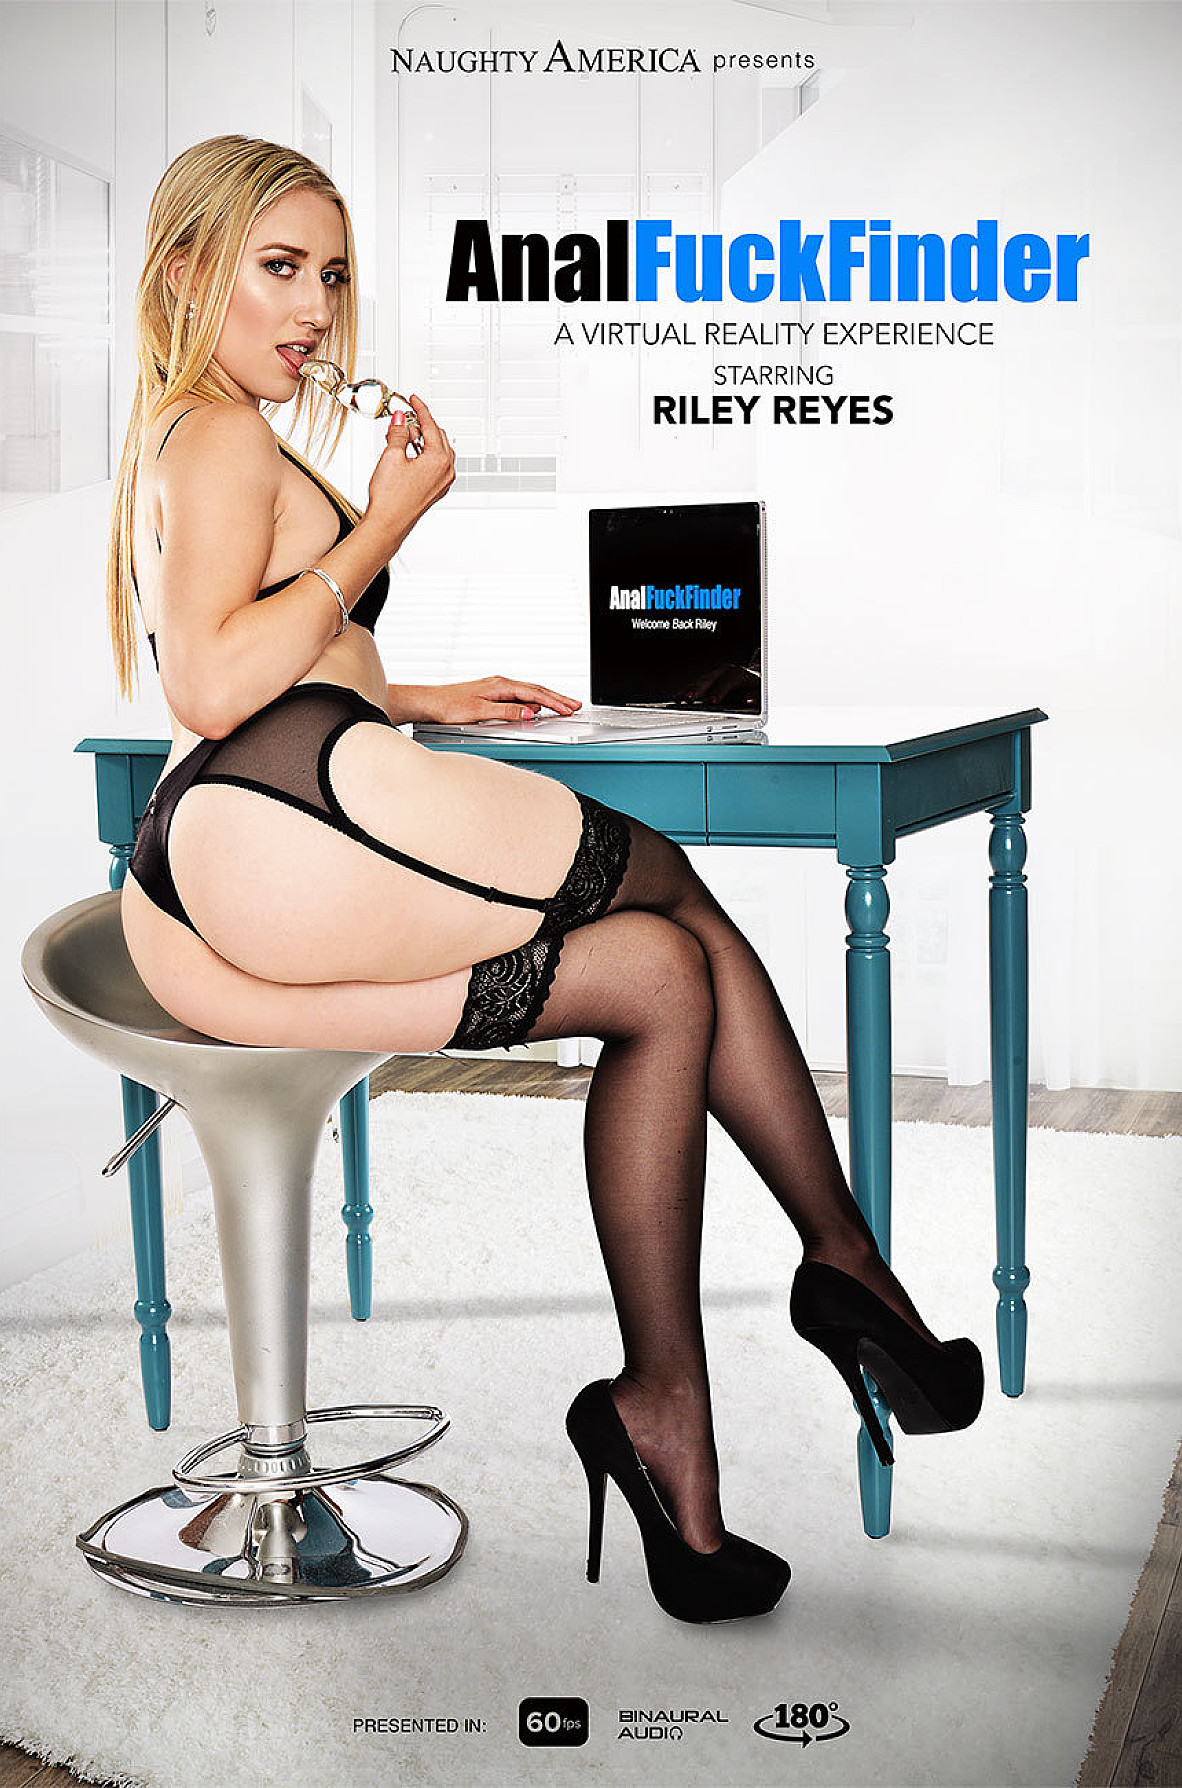 Watch Riley Reyes and Danny Mountain VR video in Naughty America